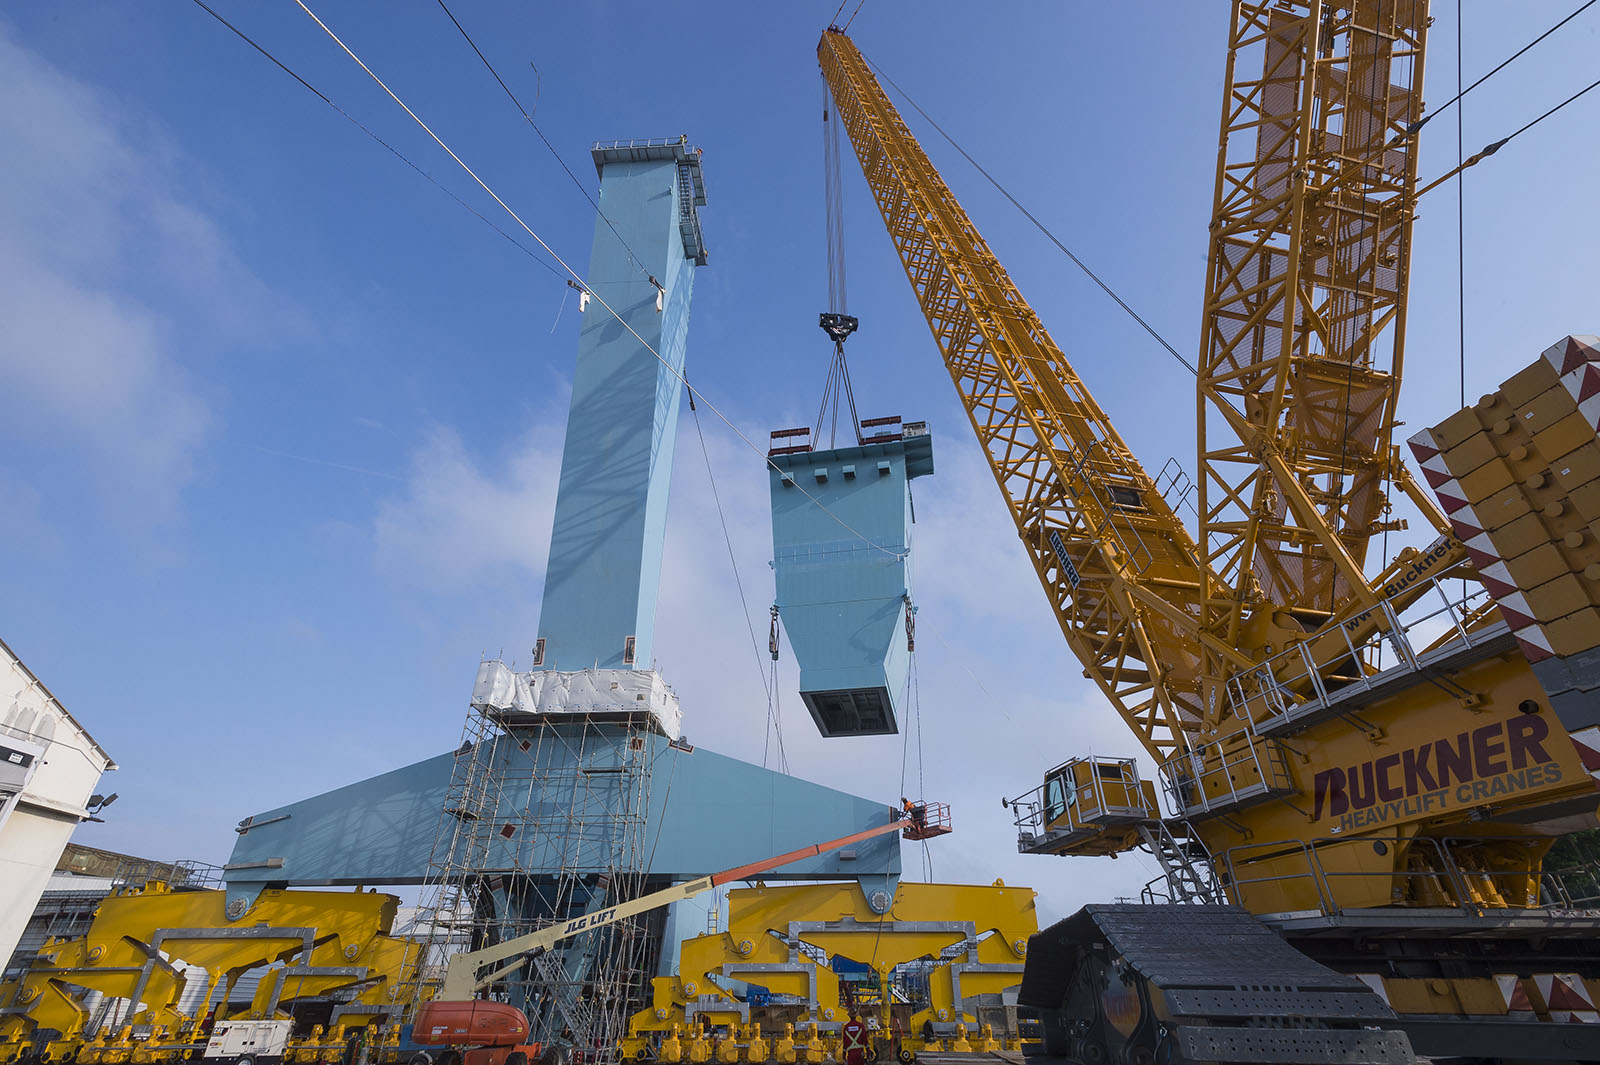 The south leg of Newport News Shipbuilding's new 315-metric-ton Goliath gantry crane is lifted into place.